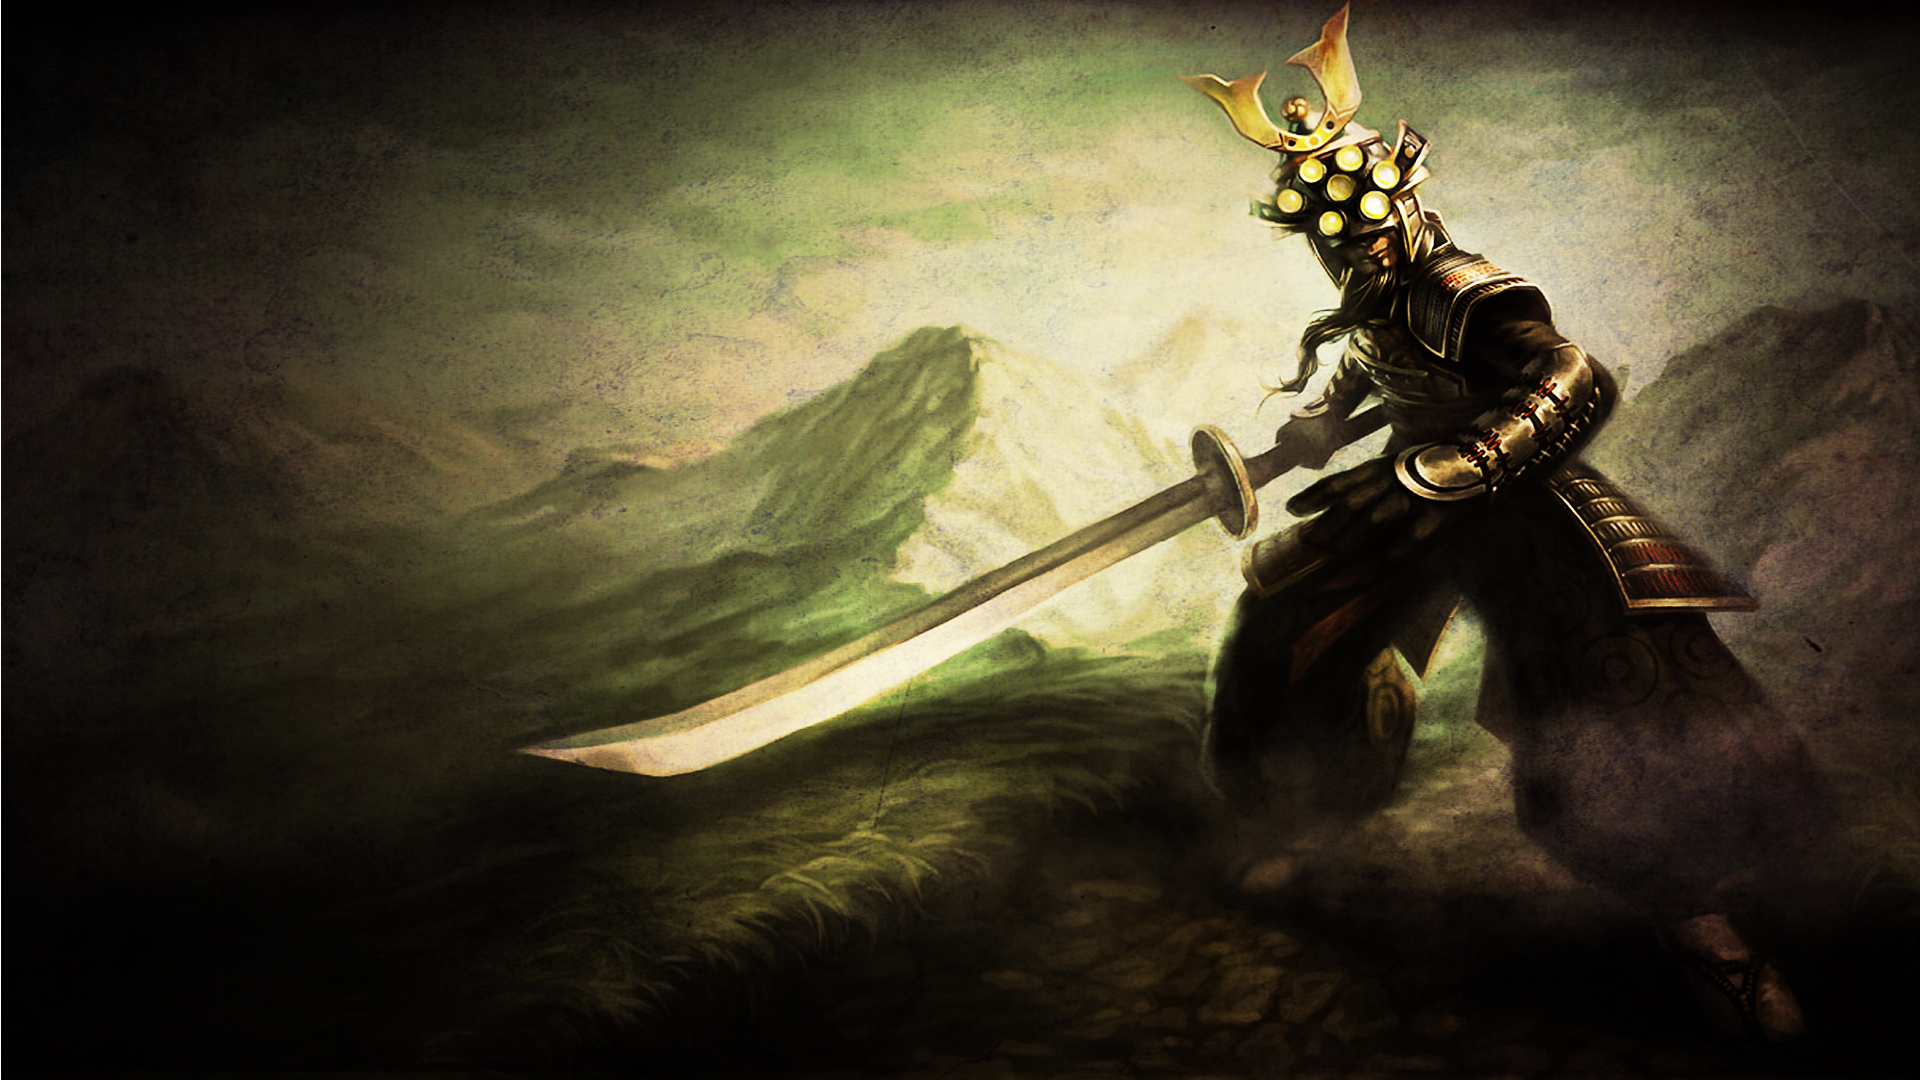 League of Legends - Master Yi Wallpaper by Soinnes on ...